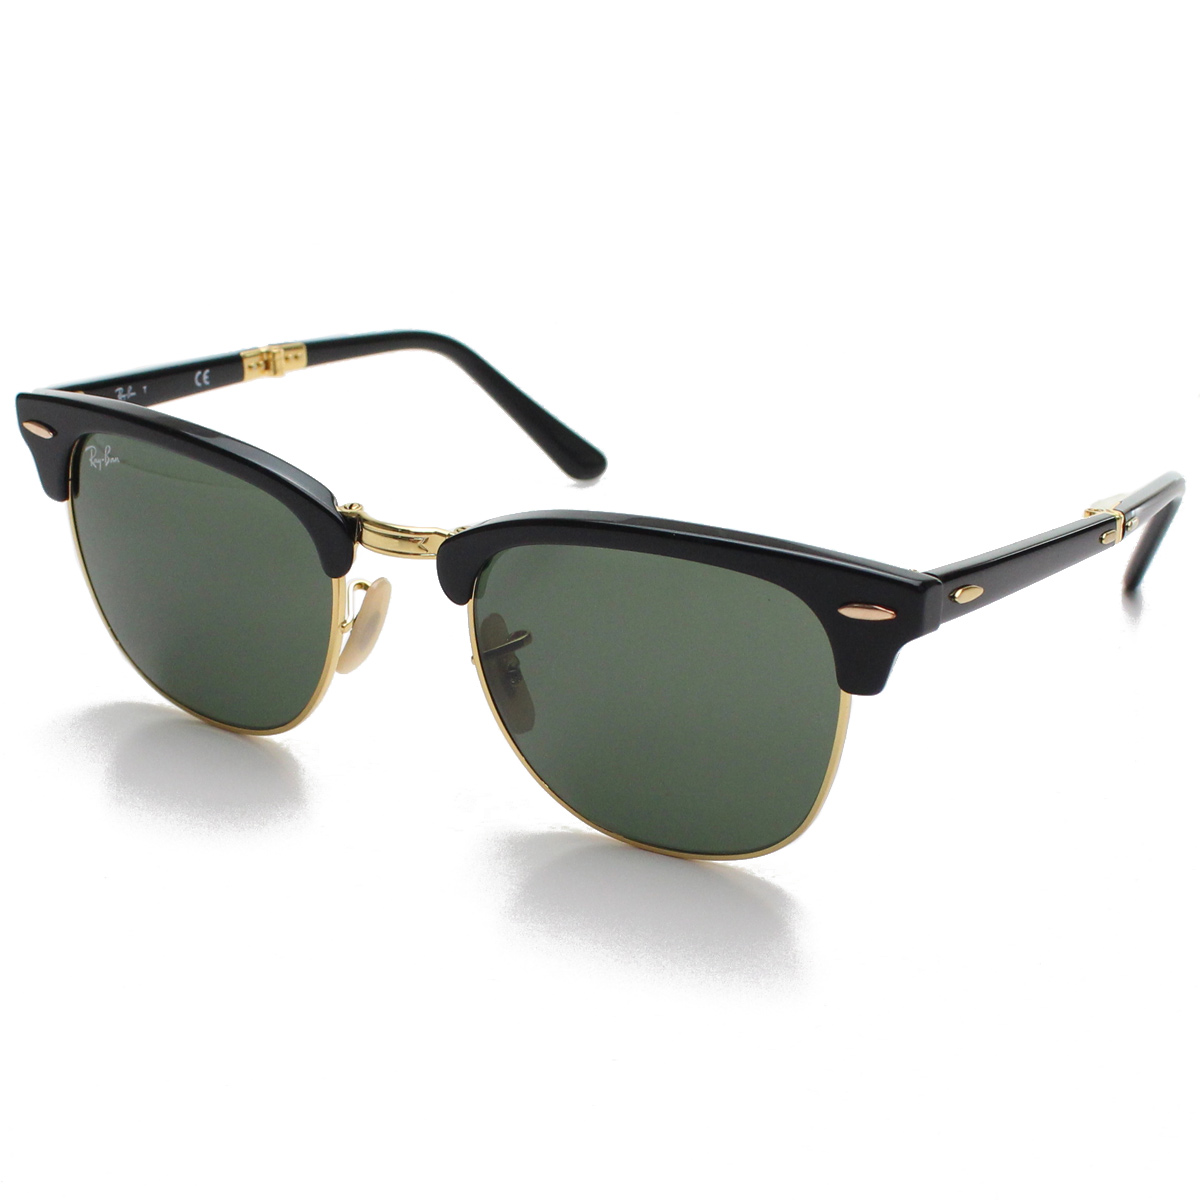 caa152db588 Bighit The total brand wholesale  Ray-Ban Ray-Ban sunglasses RB2176 901  (51) black gold system